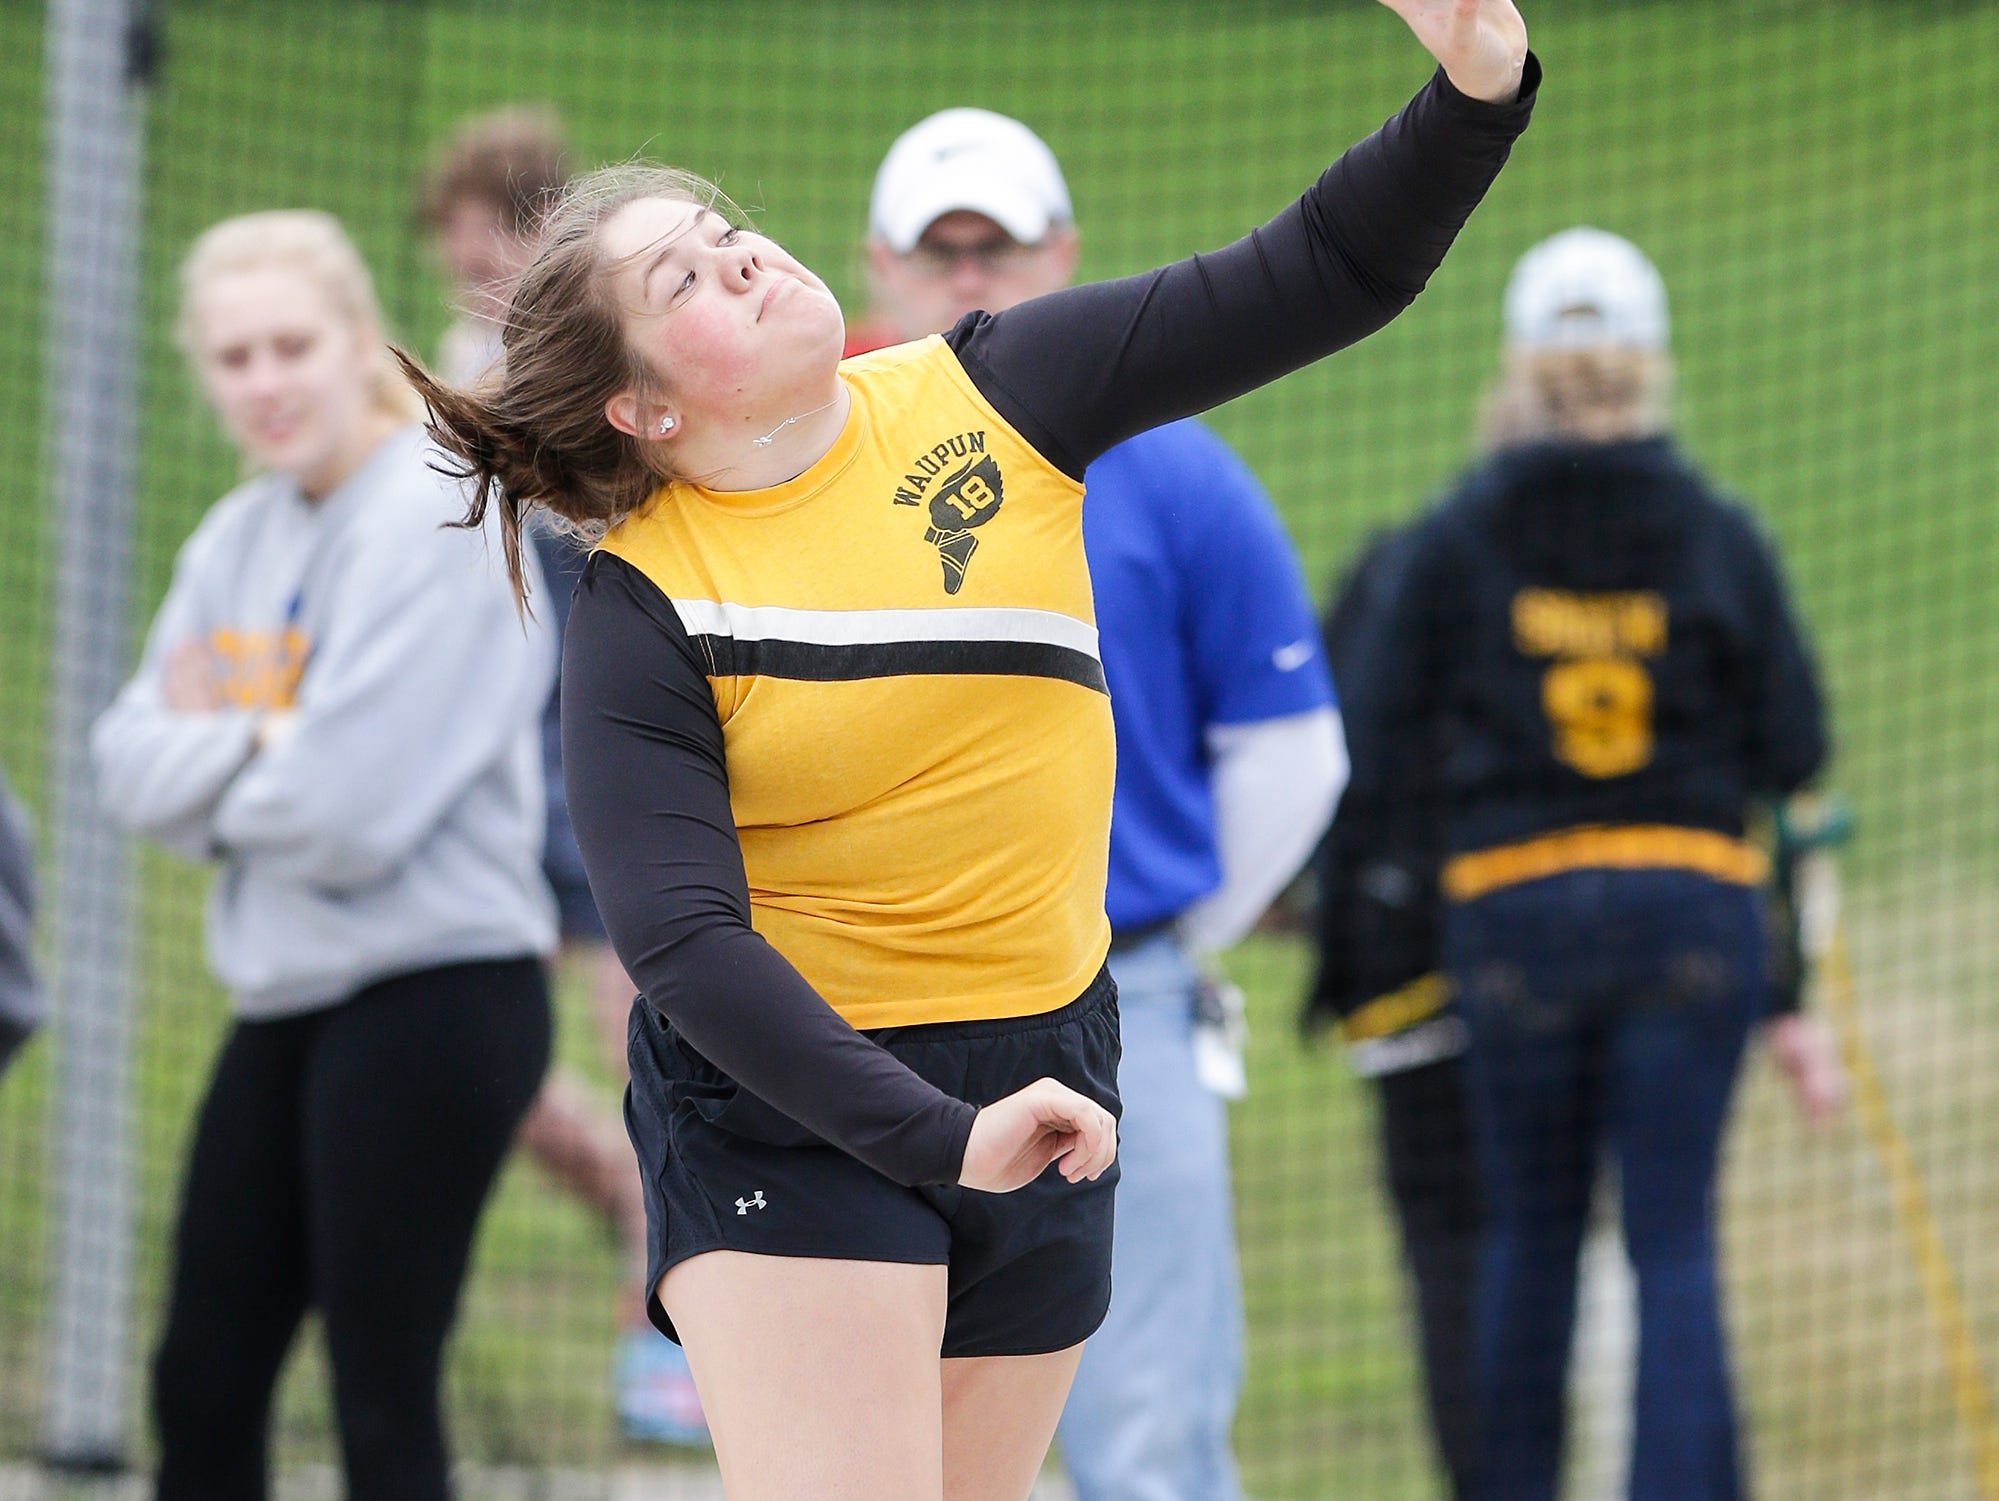 Kelli Bonack of Waupun High School competes in the shot put Friday, May 3, 2019 at the Waupun High School Invitational track and field meet. Doug Raflik/USA TODAY NETWORK-Wisconsin